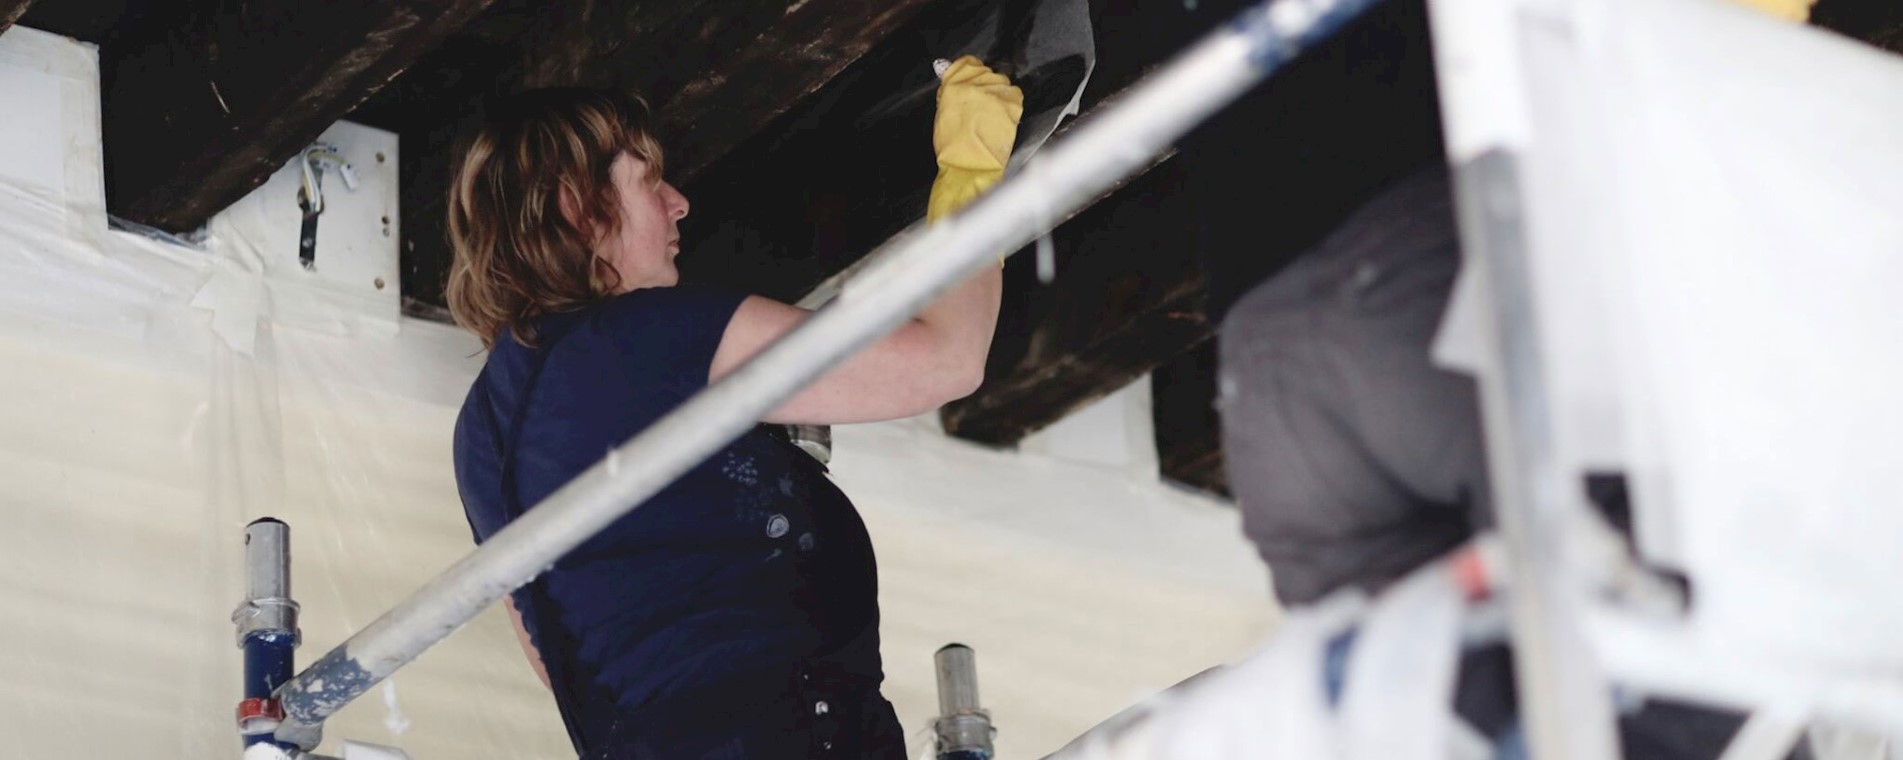 Conservation of the painted ceiling as part of the restoration project